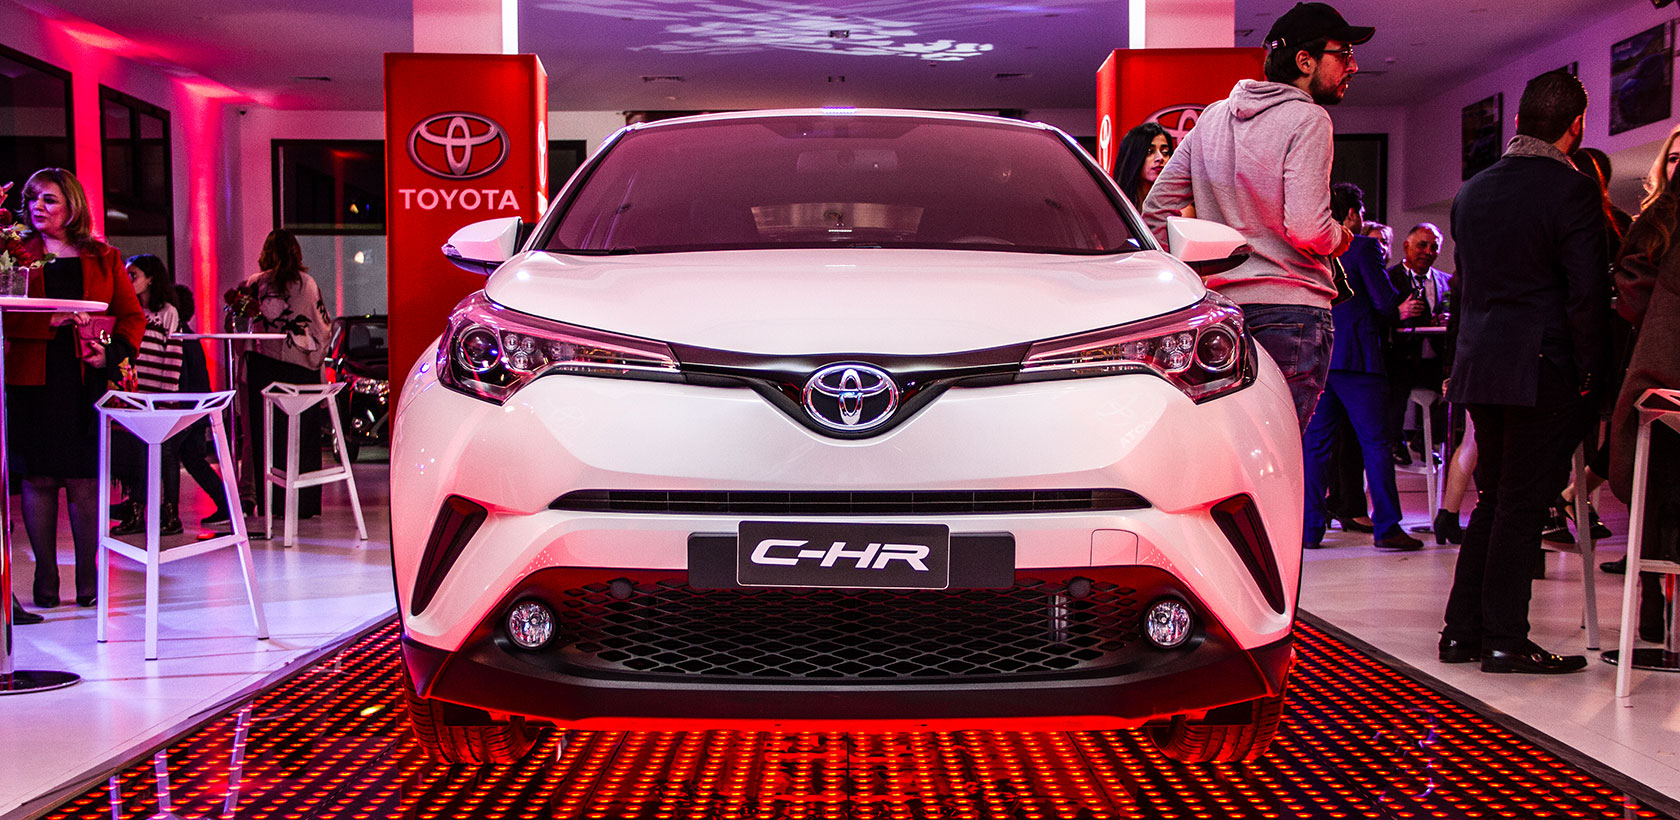 BSB Toyota lance le Crossover C-HR